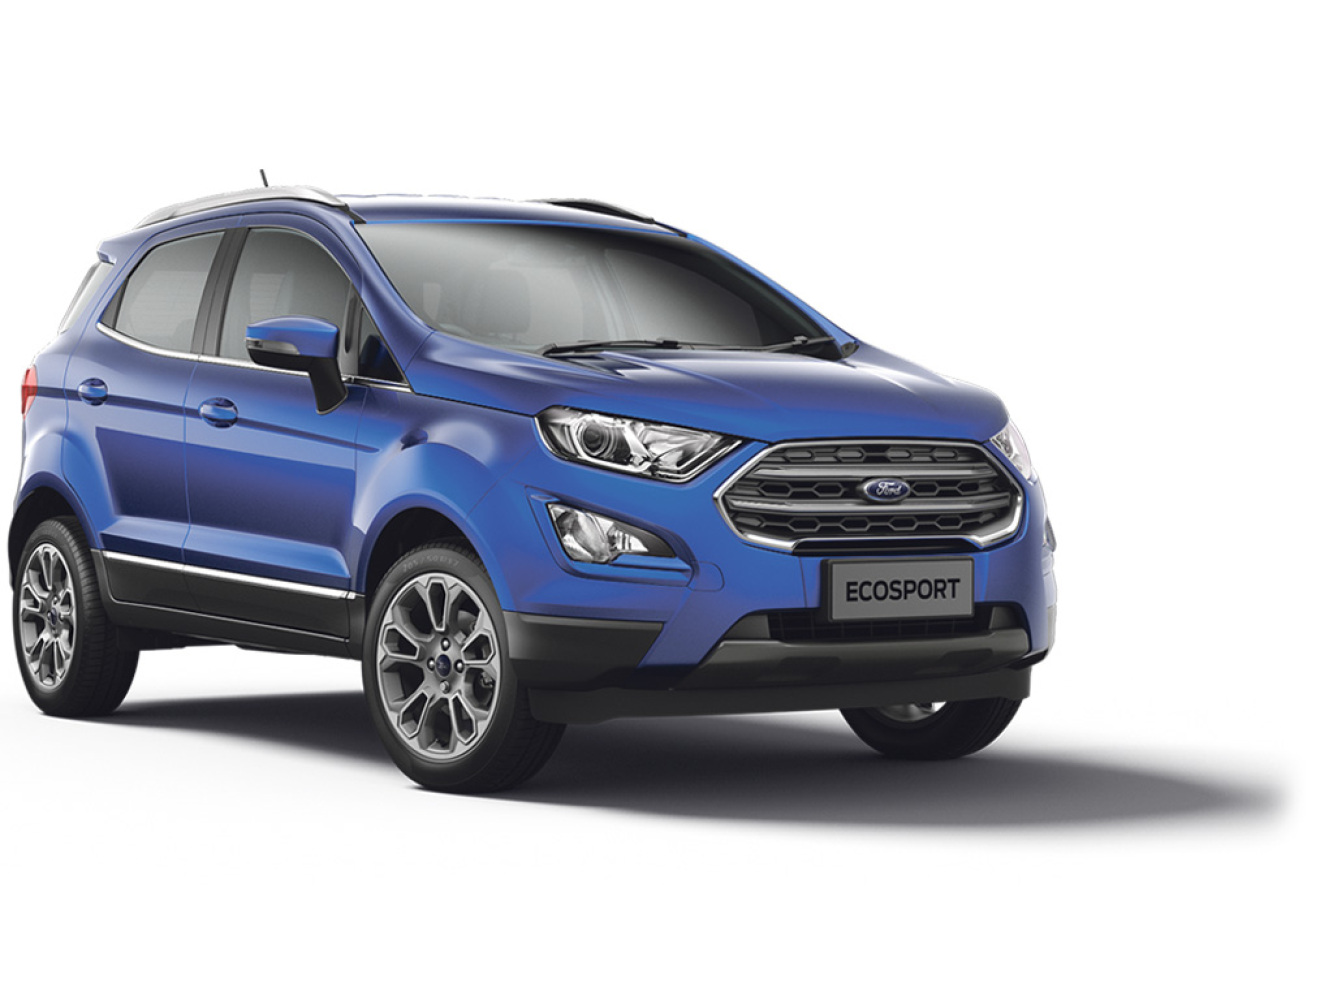 new ford ecosport 1 0 ecoboost 125 titanium 5dr petrol hatchback for sale bristol street. Black Bedroom Furniture Sets. Home Design Ideas